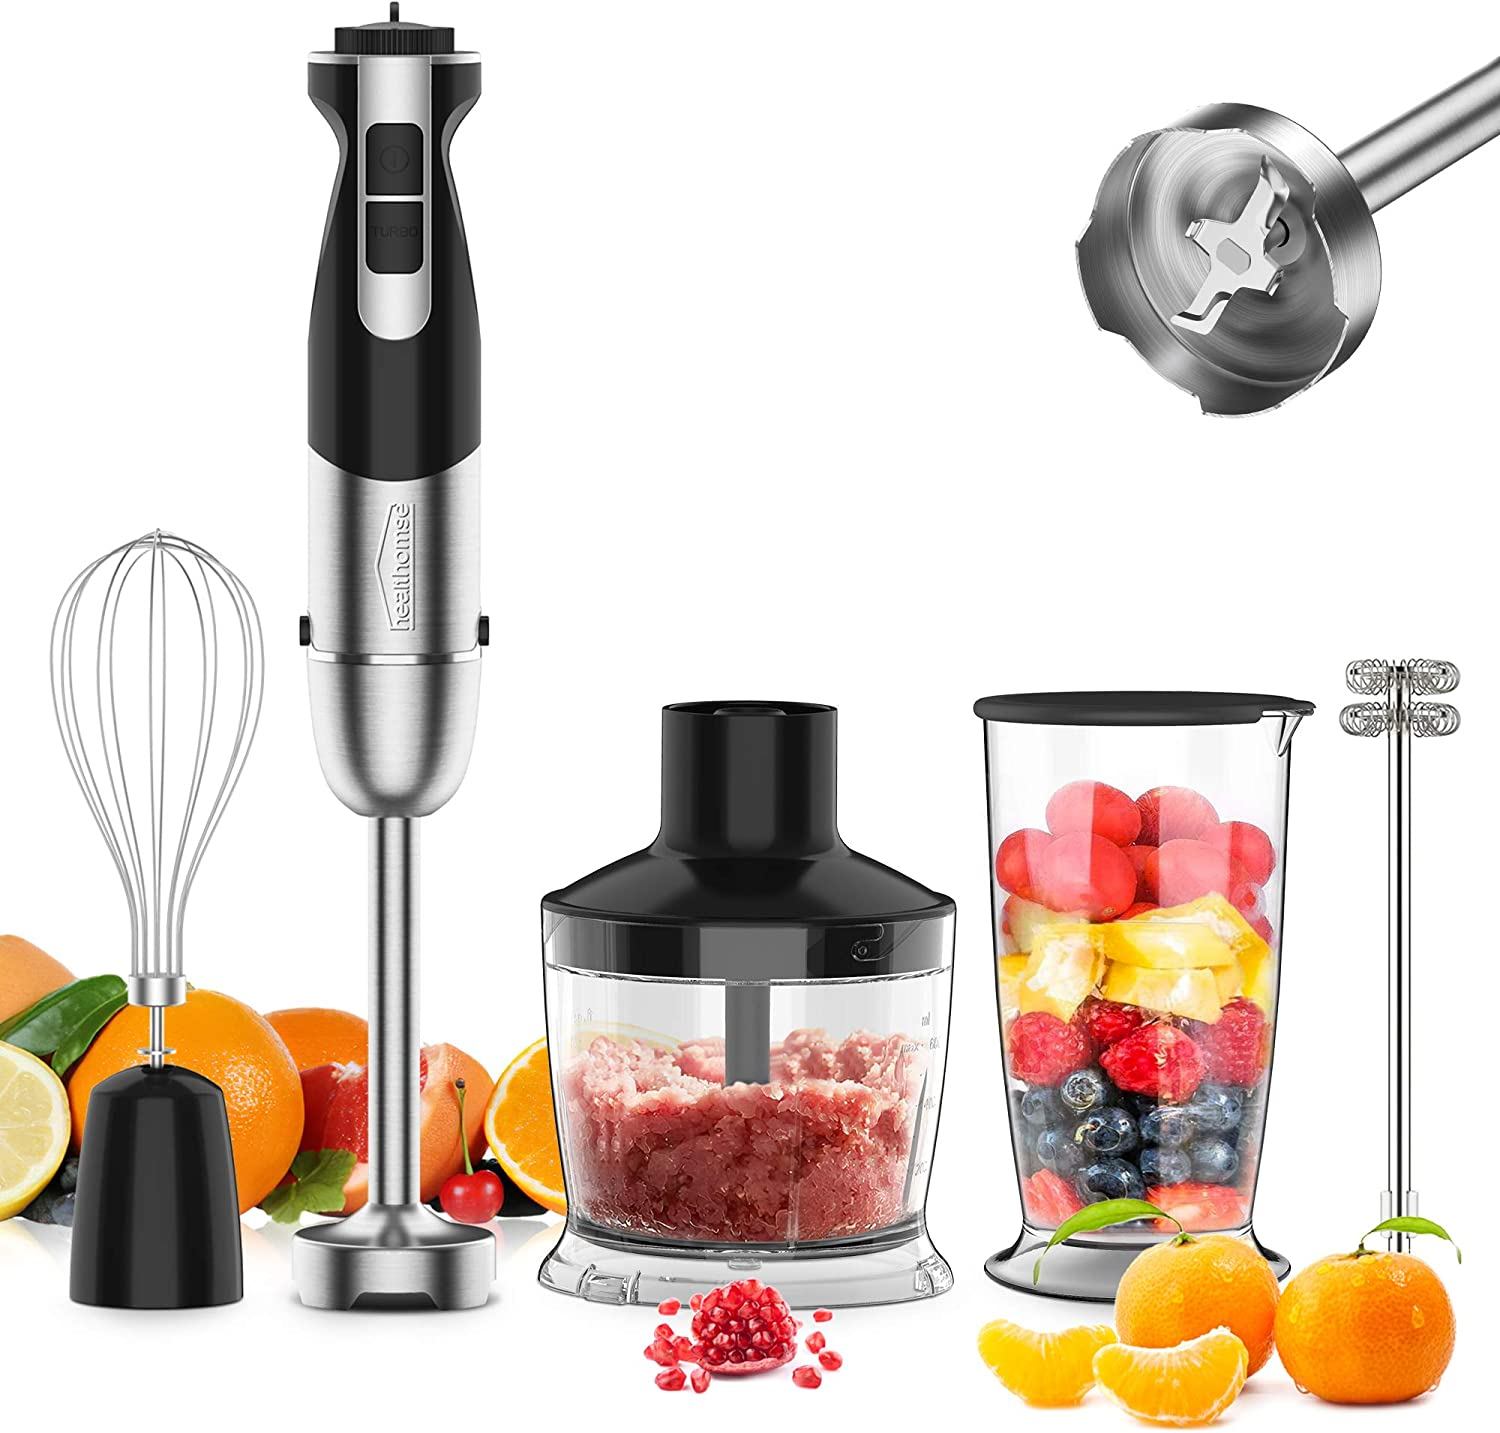 [Upgraded] 5-In-1 Immersion Hand Blender, healthomse Powerful 800W 12-Speed Stainless Steel Stick Blender with Milk Frother, Egg Whisk, 4-Blades 500ml Chopper and 700ml Beaker with Lid, Detachable